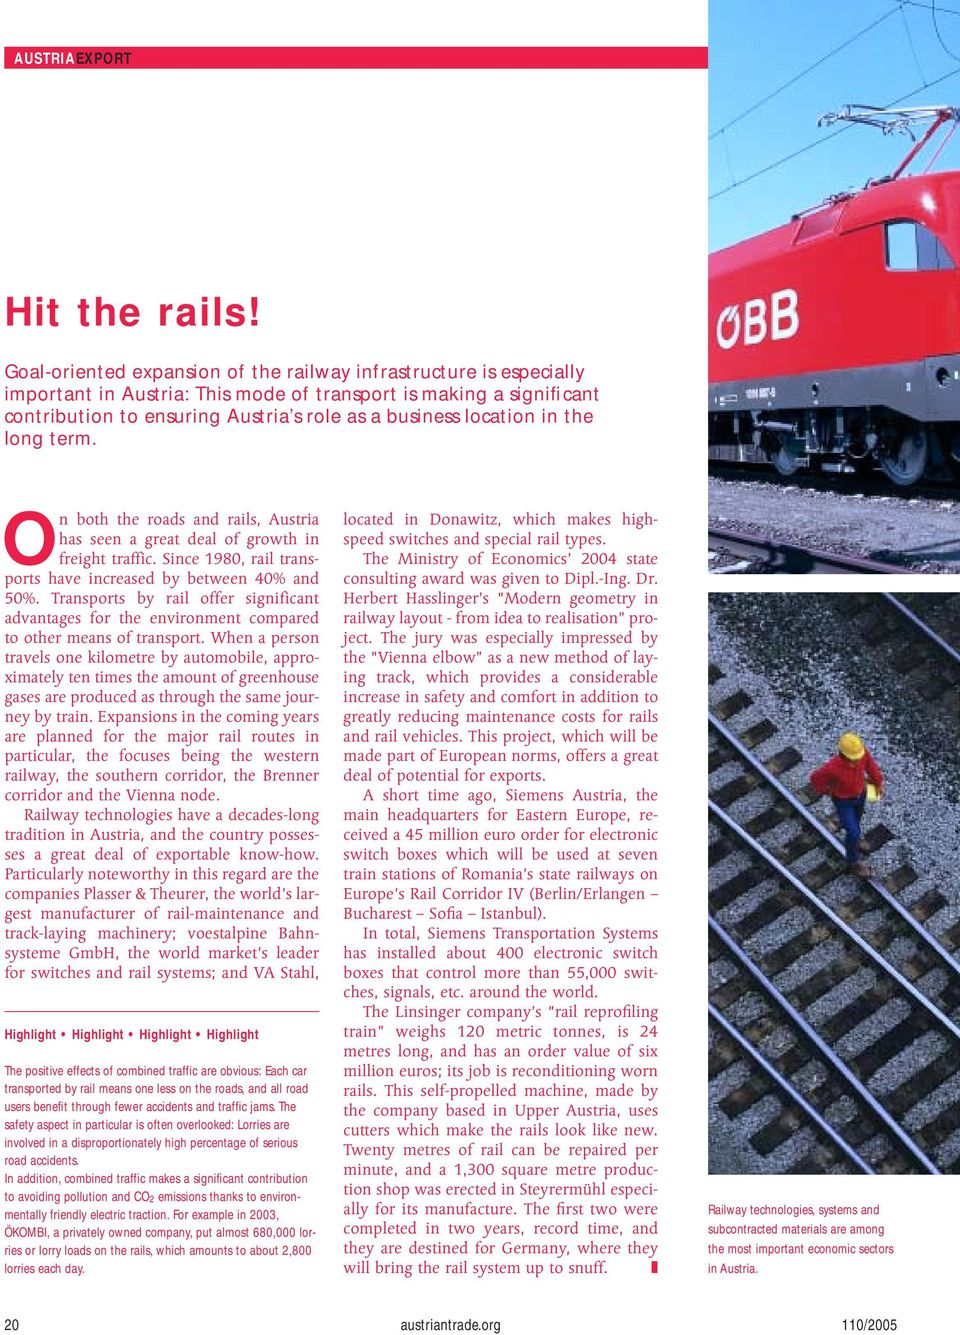 in the long term. On both the roads and rails, Austria has seen a great deal of growth in freight traffic. Since 1980, rail transports have increased by between 40% and 50%.